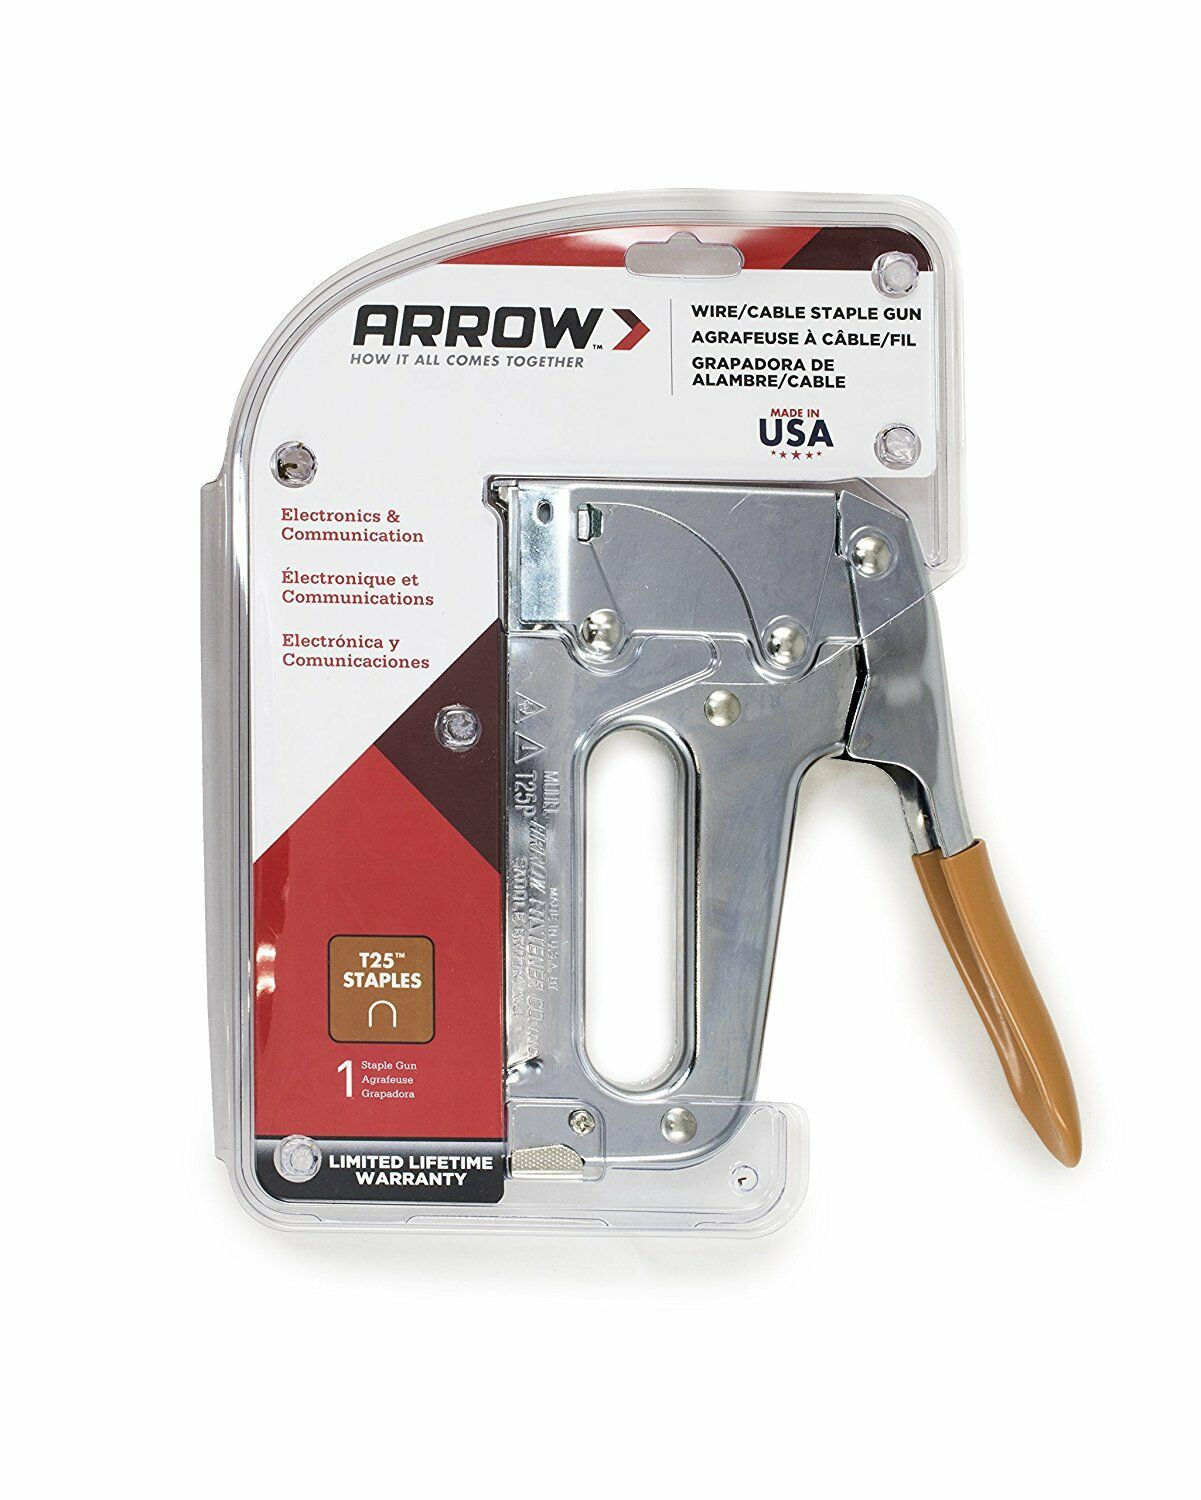 Arrow Fastener T25 Low Voltage Wire Staple Gun Fits up to 1/4-inch ...